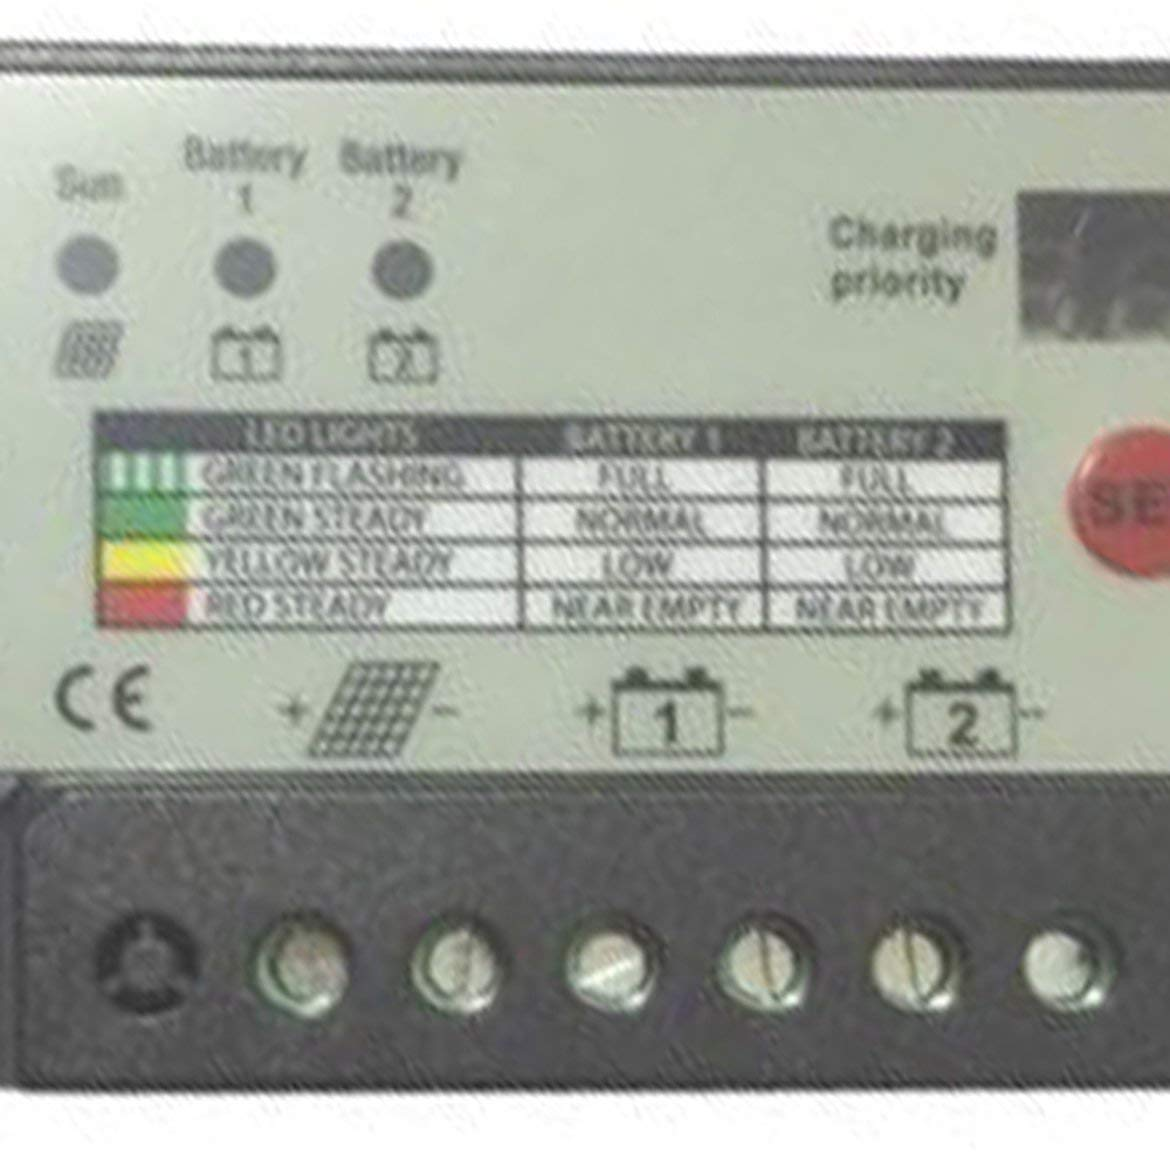 20 Amp Dual Battery Solar Charge Controller for Charging Separately Wired/12V or 24v Batteries Black